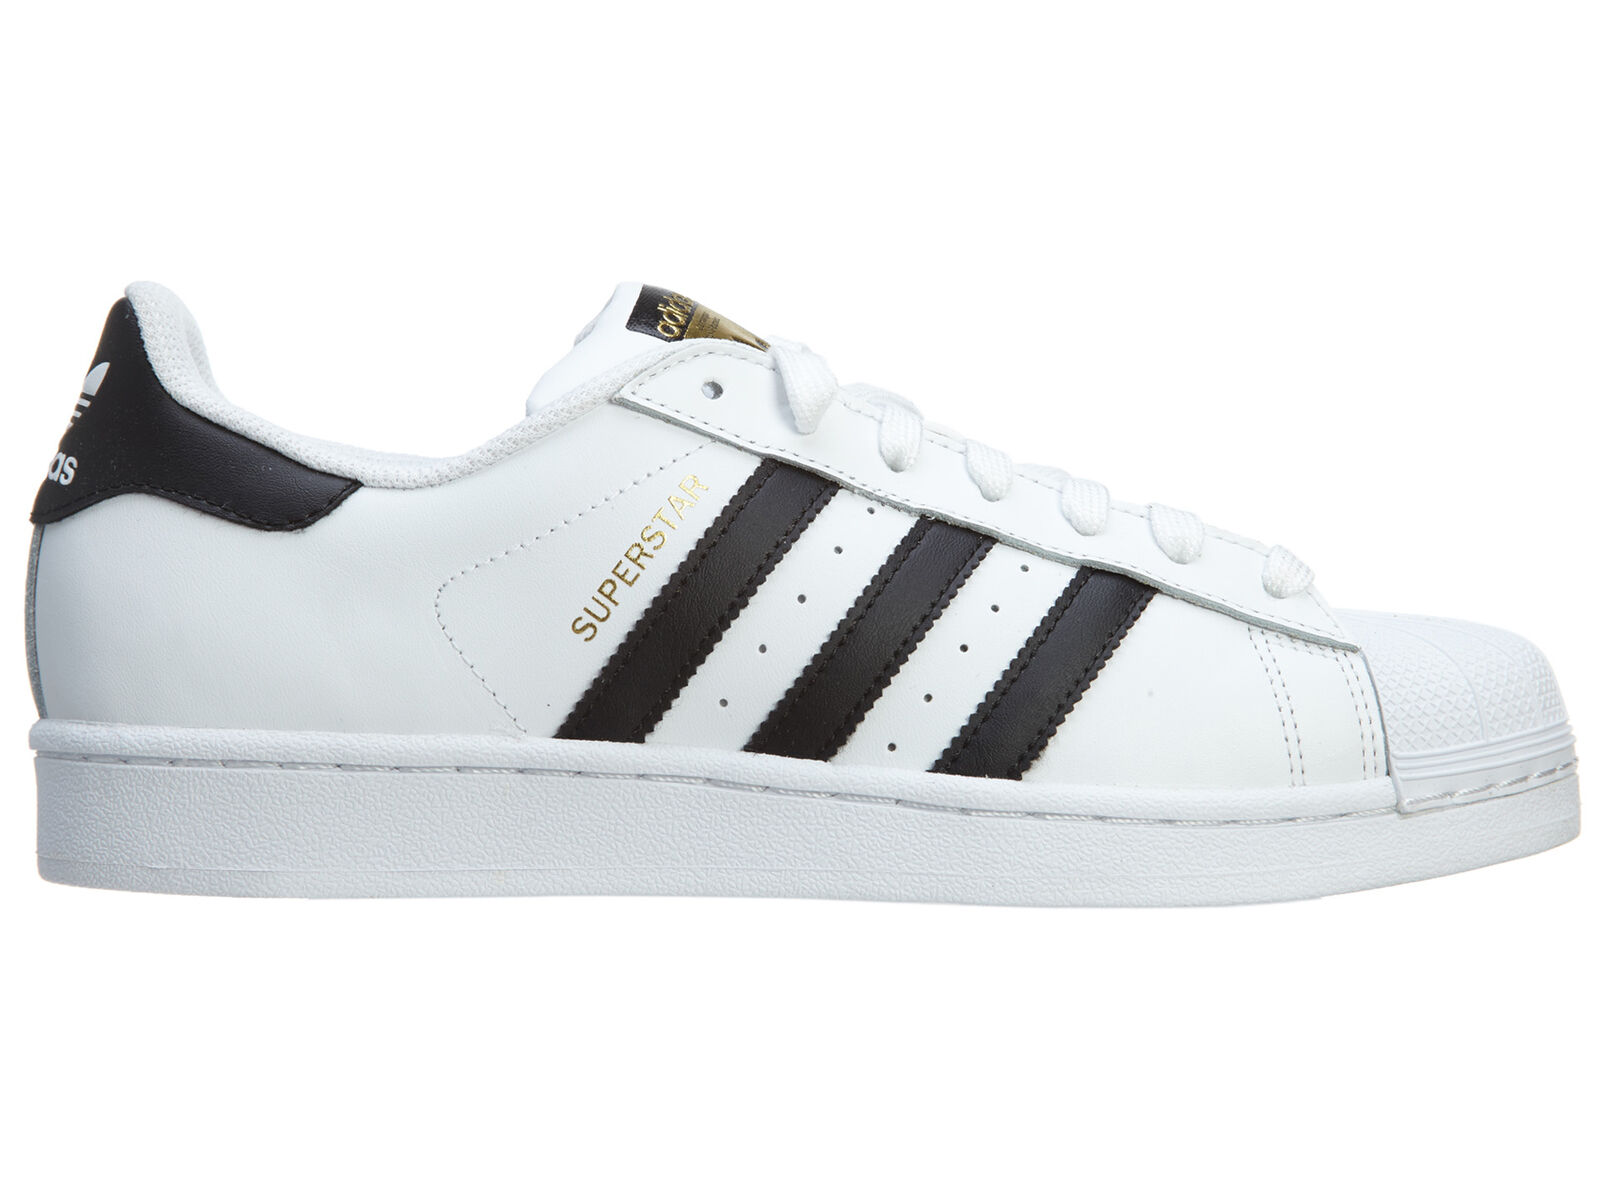 Adidas Superstar Mens C77124 White Black Gold Leather Shell Toe Shoes Size 10.5